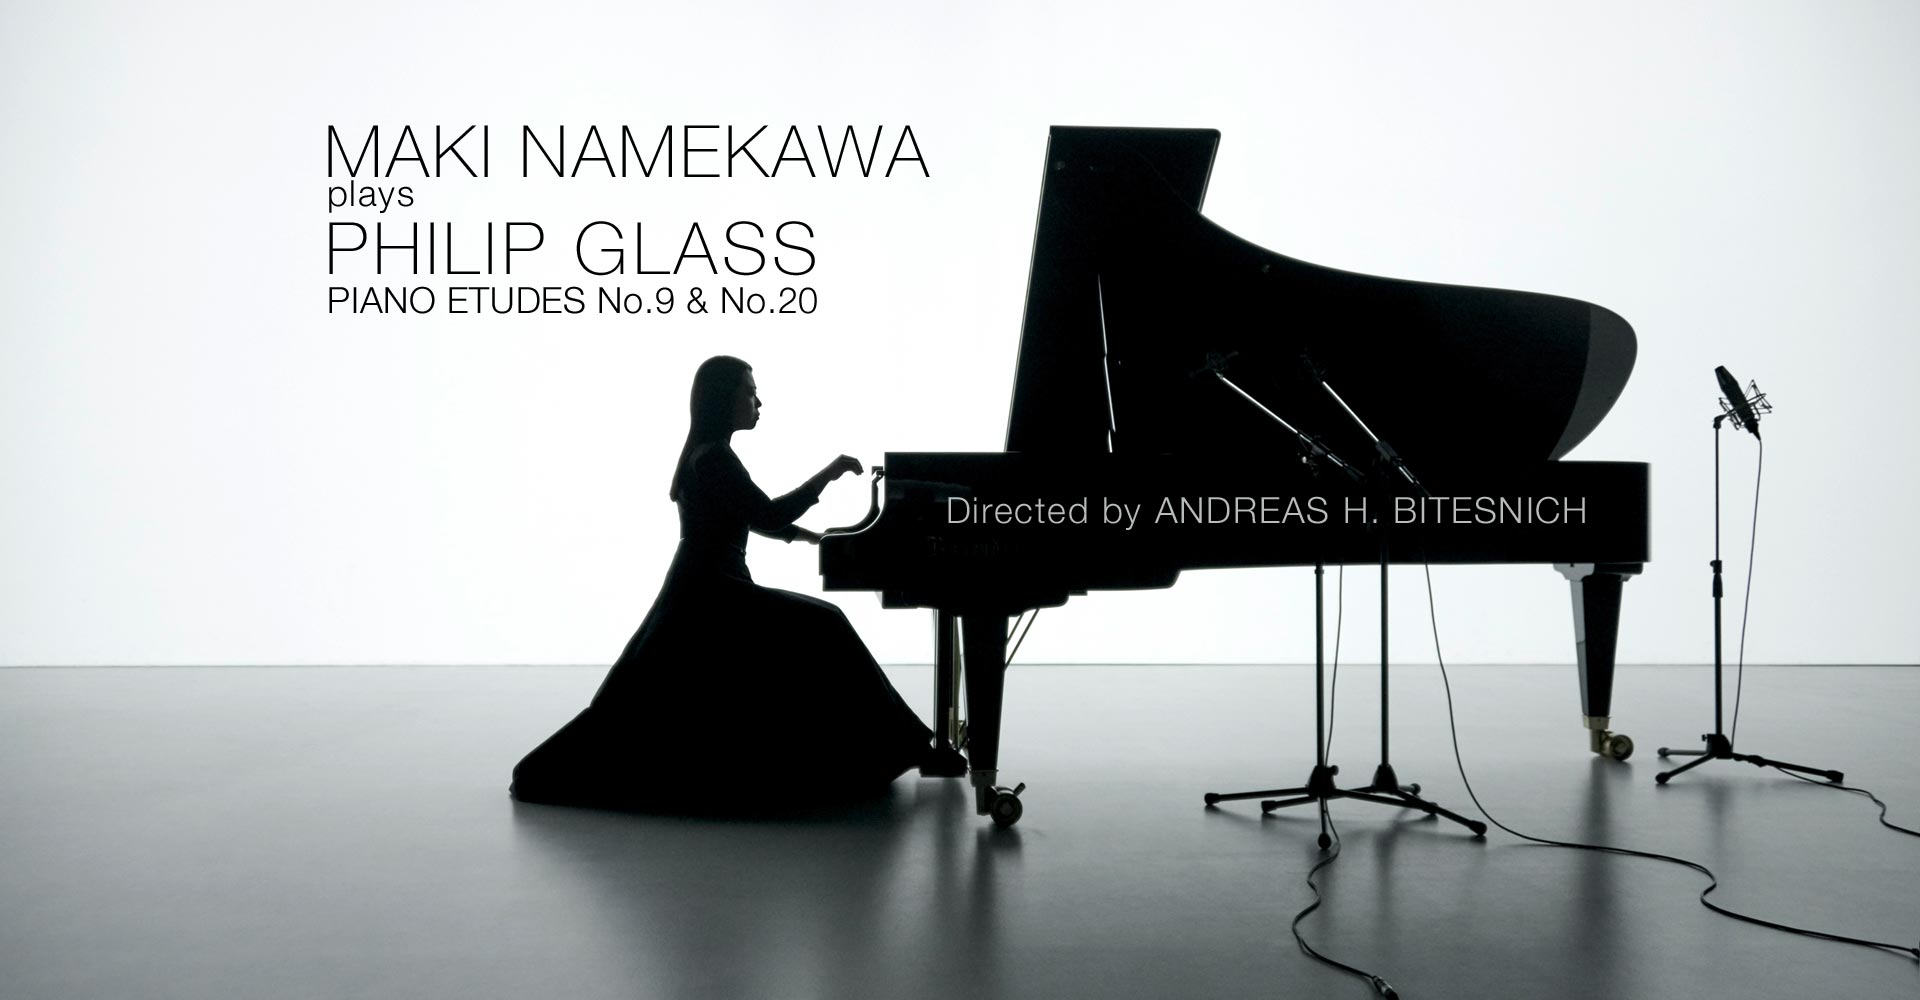 Philip_Glass_Maki_Namekawa_by_Andreas_H_Bitesnich